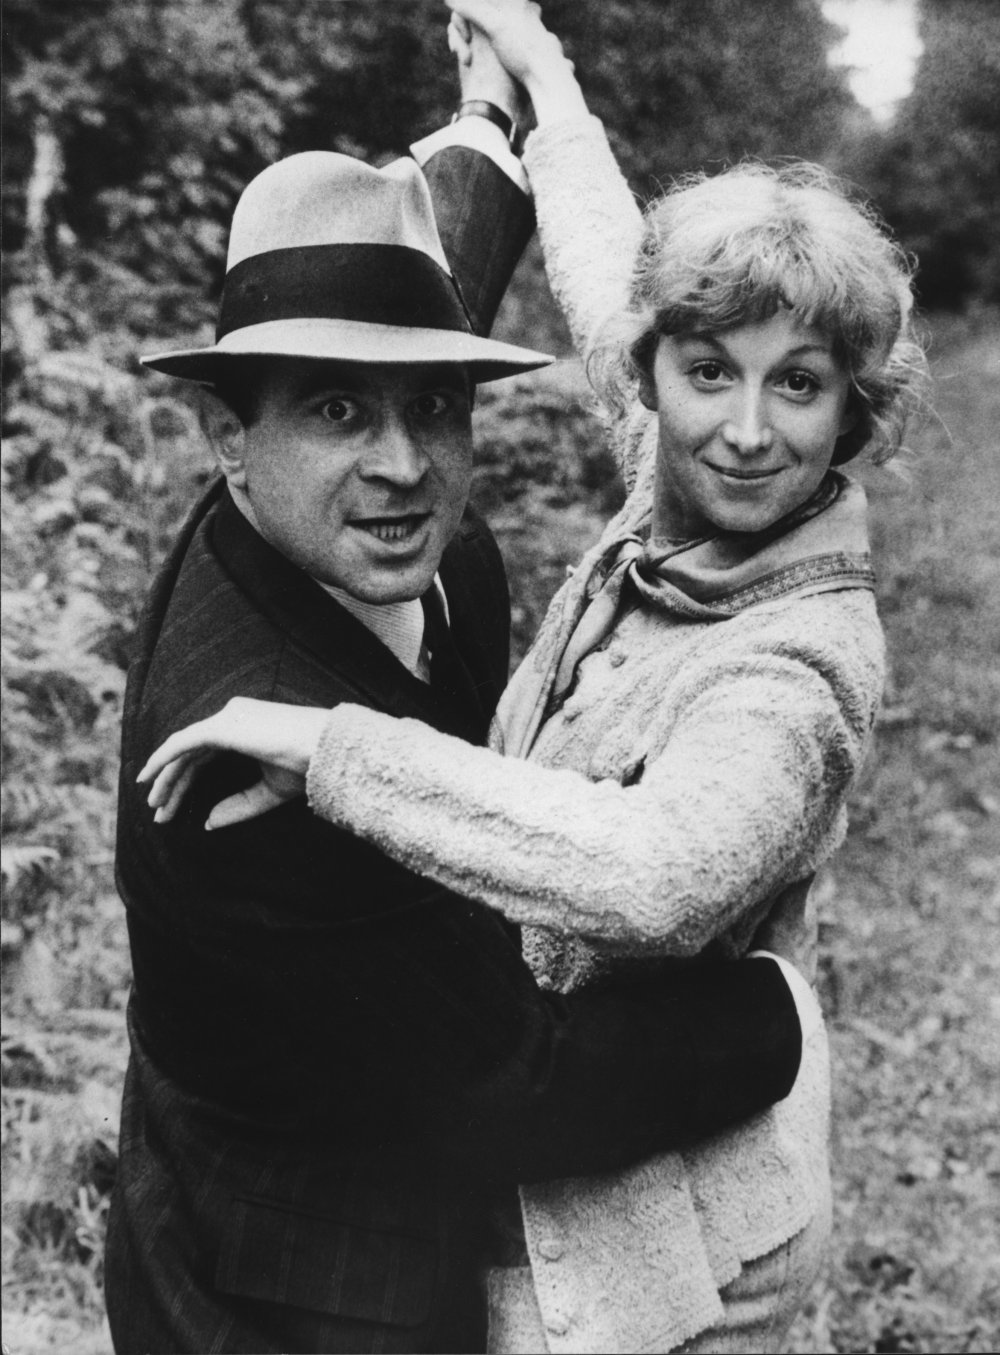 Hoskins rose to stardom in the lead role in Dennis Potter's six-part serial Pennies from Heaven (1978), acclaimed as a television masterpiece